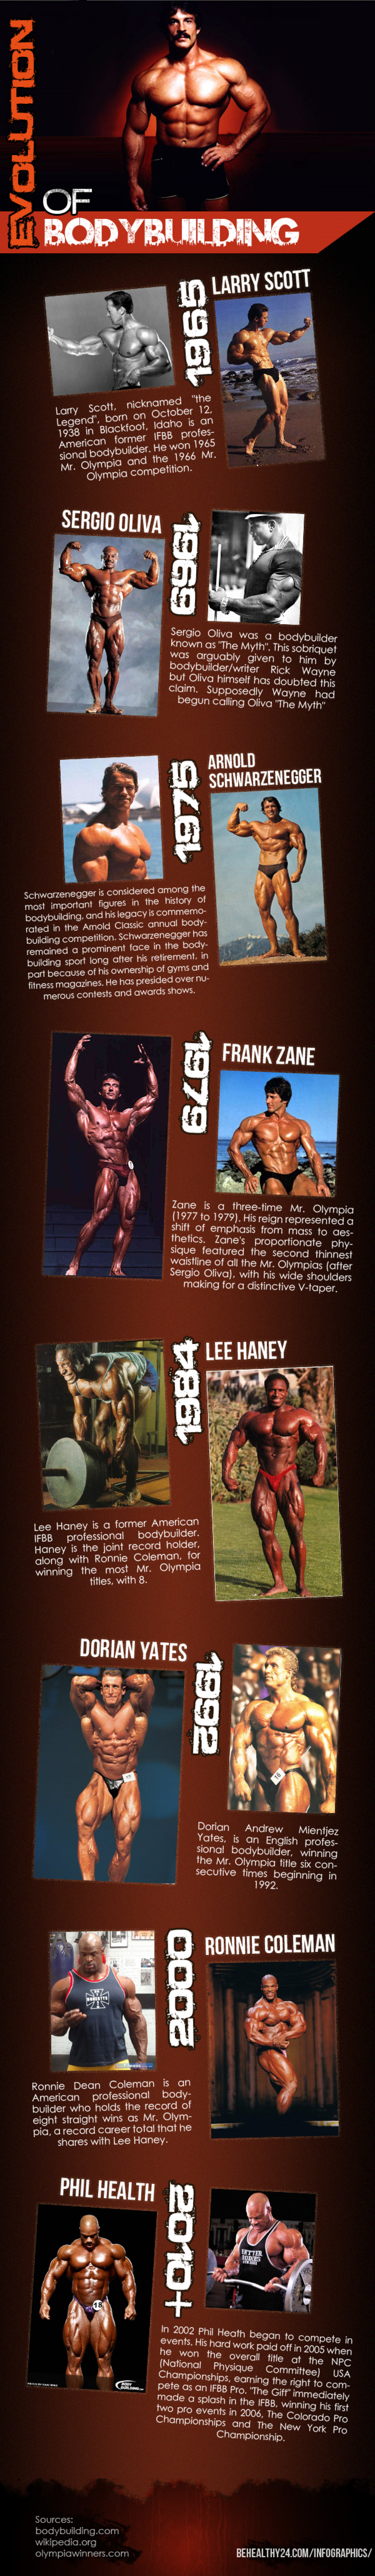 Evolution of Bodybuilding Infographic